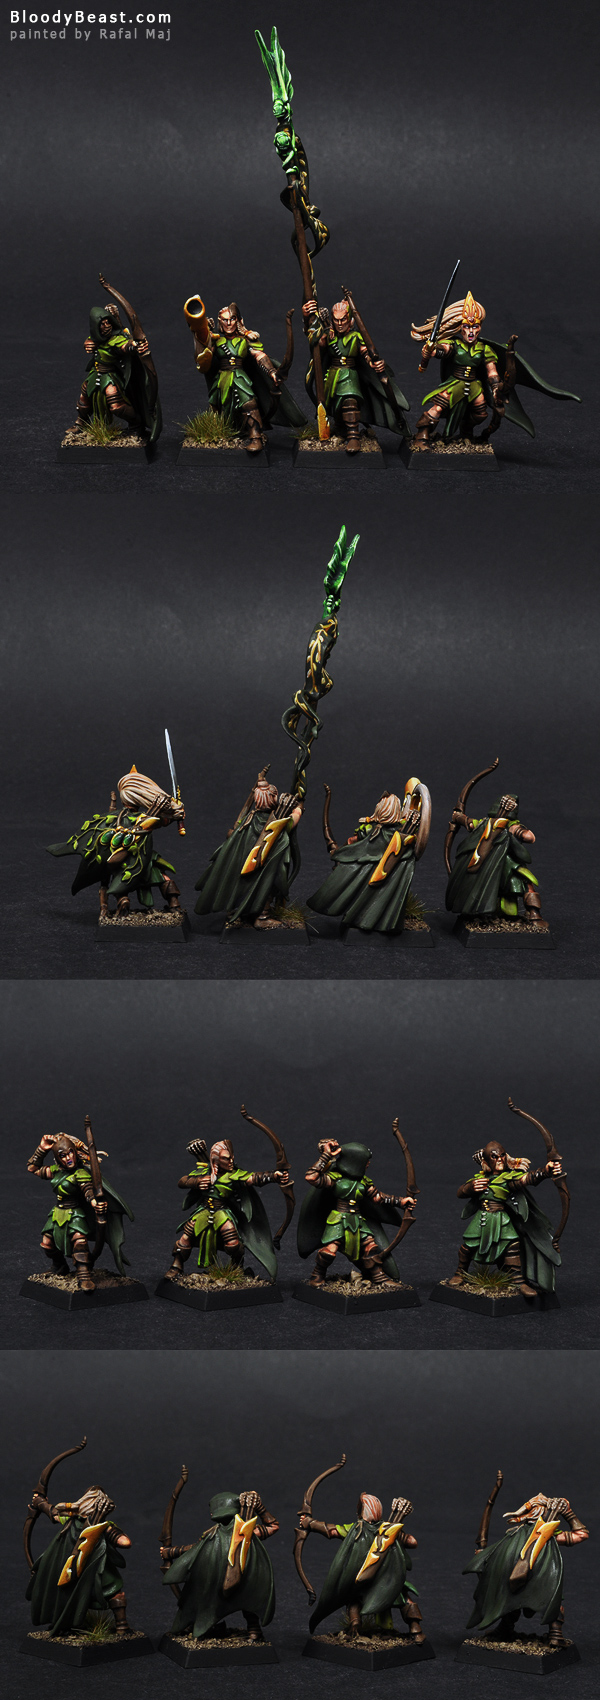 Wood Elf Glade Guards painted by Rafal Maj (BloodyBeast.com)